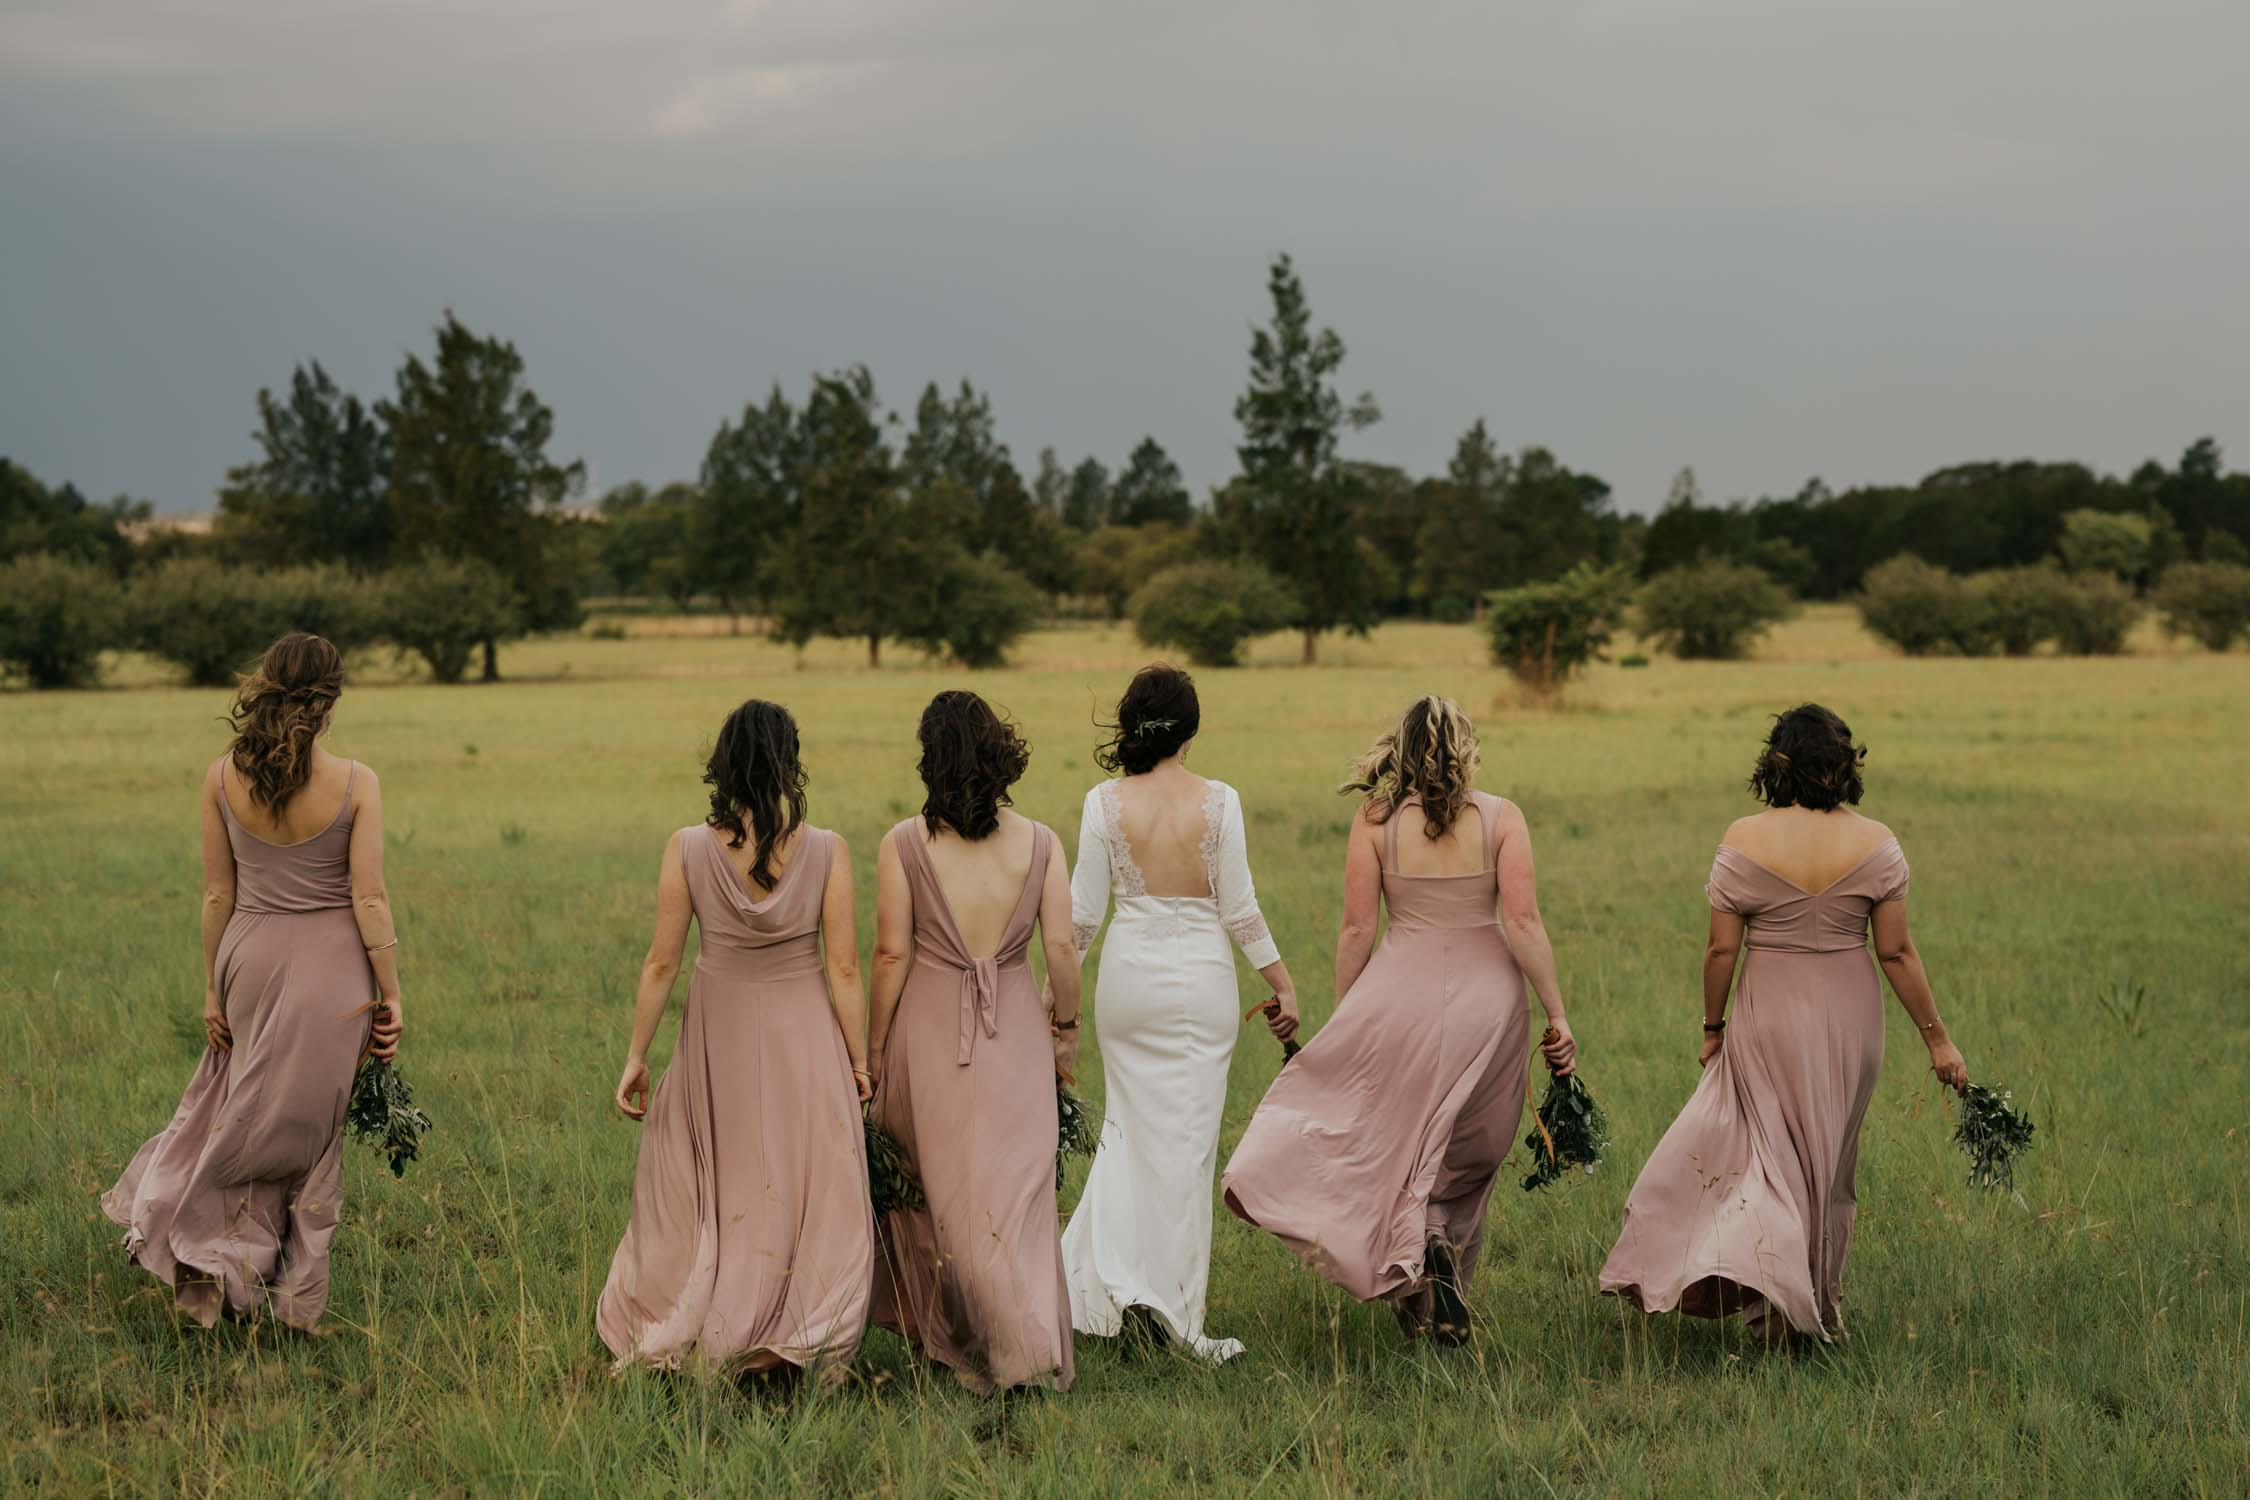 Natural photo of bride and bridesmaids walking together in a farm field